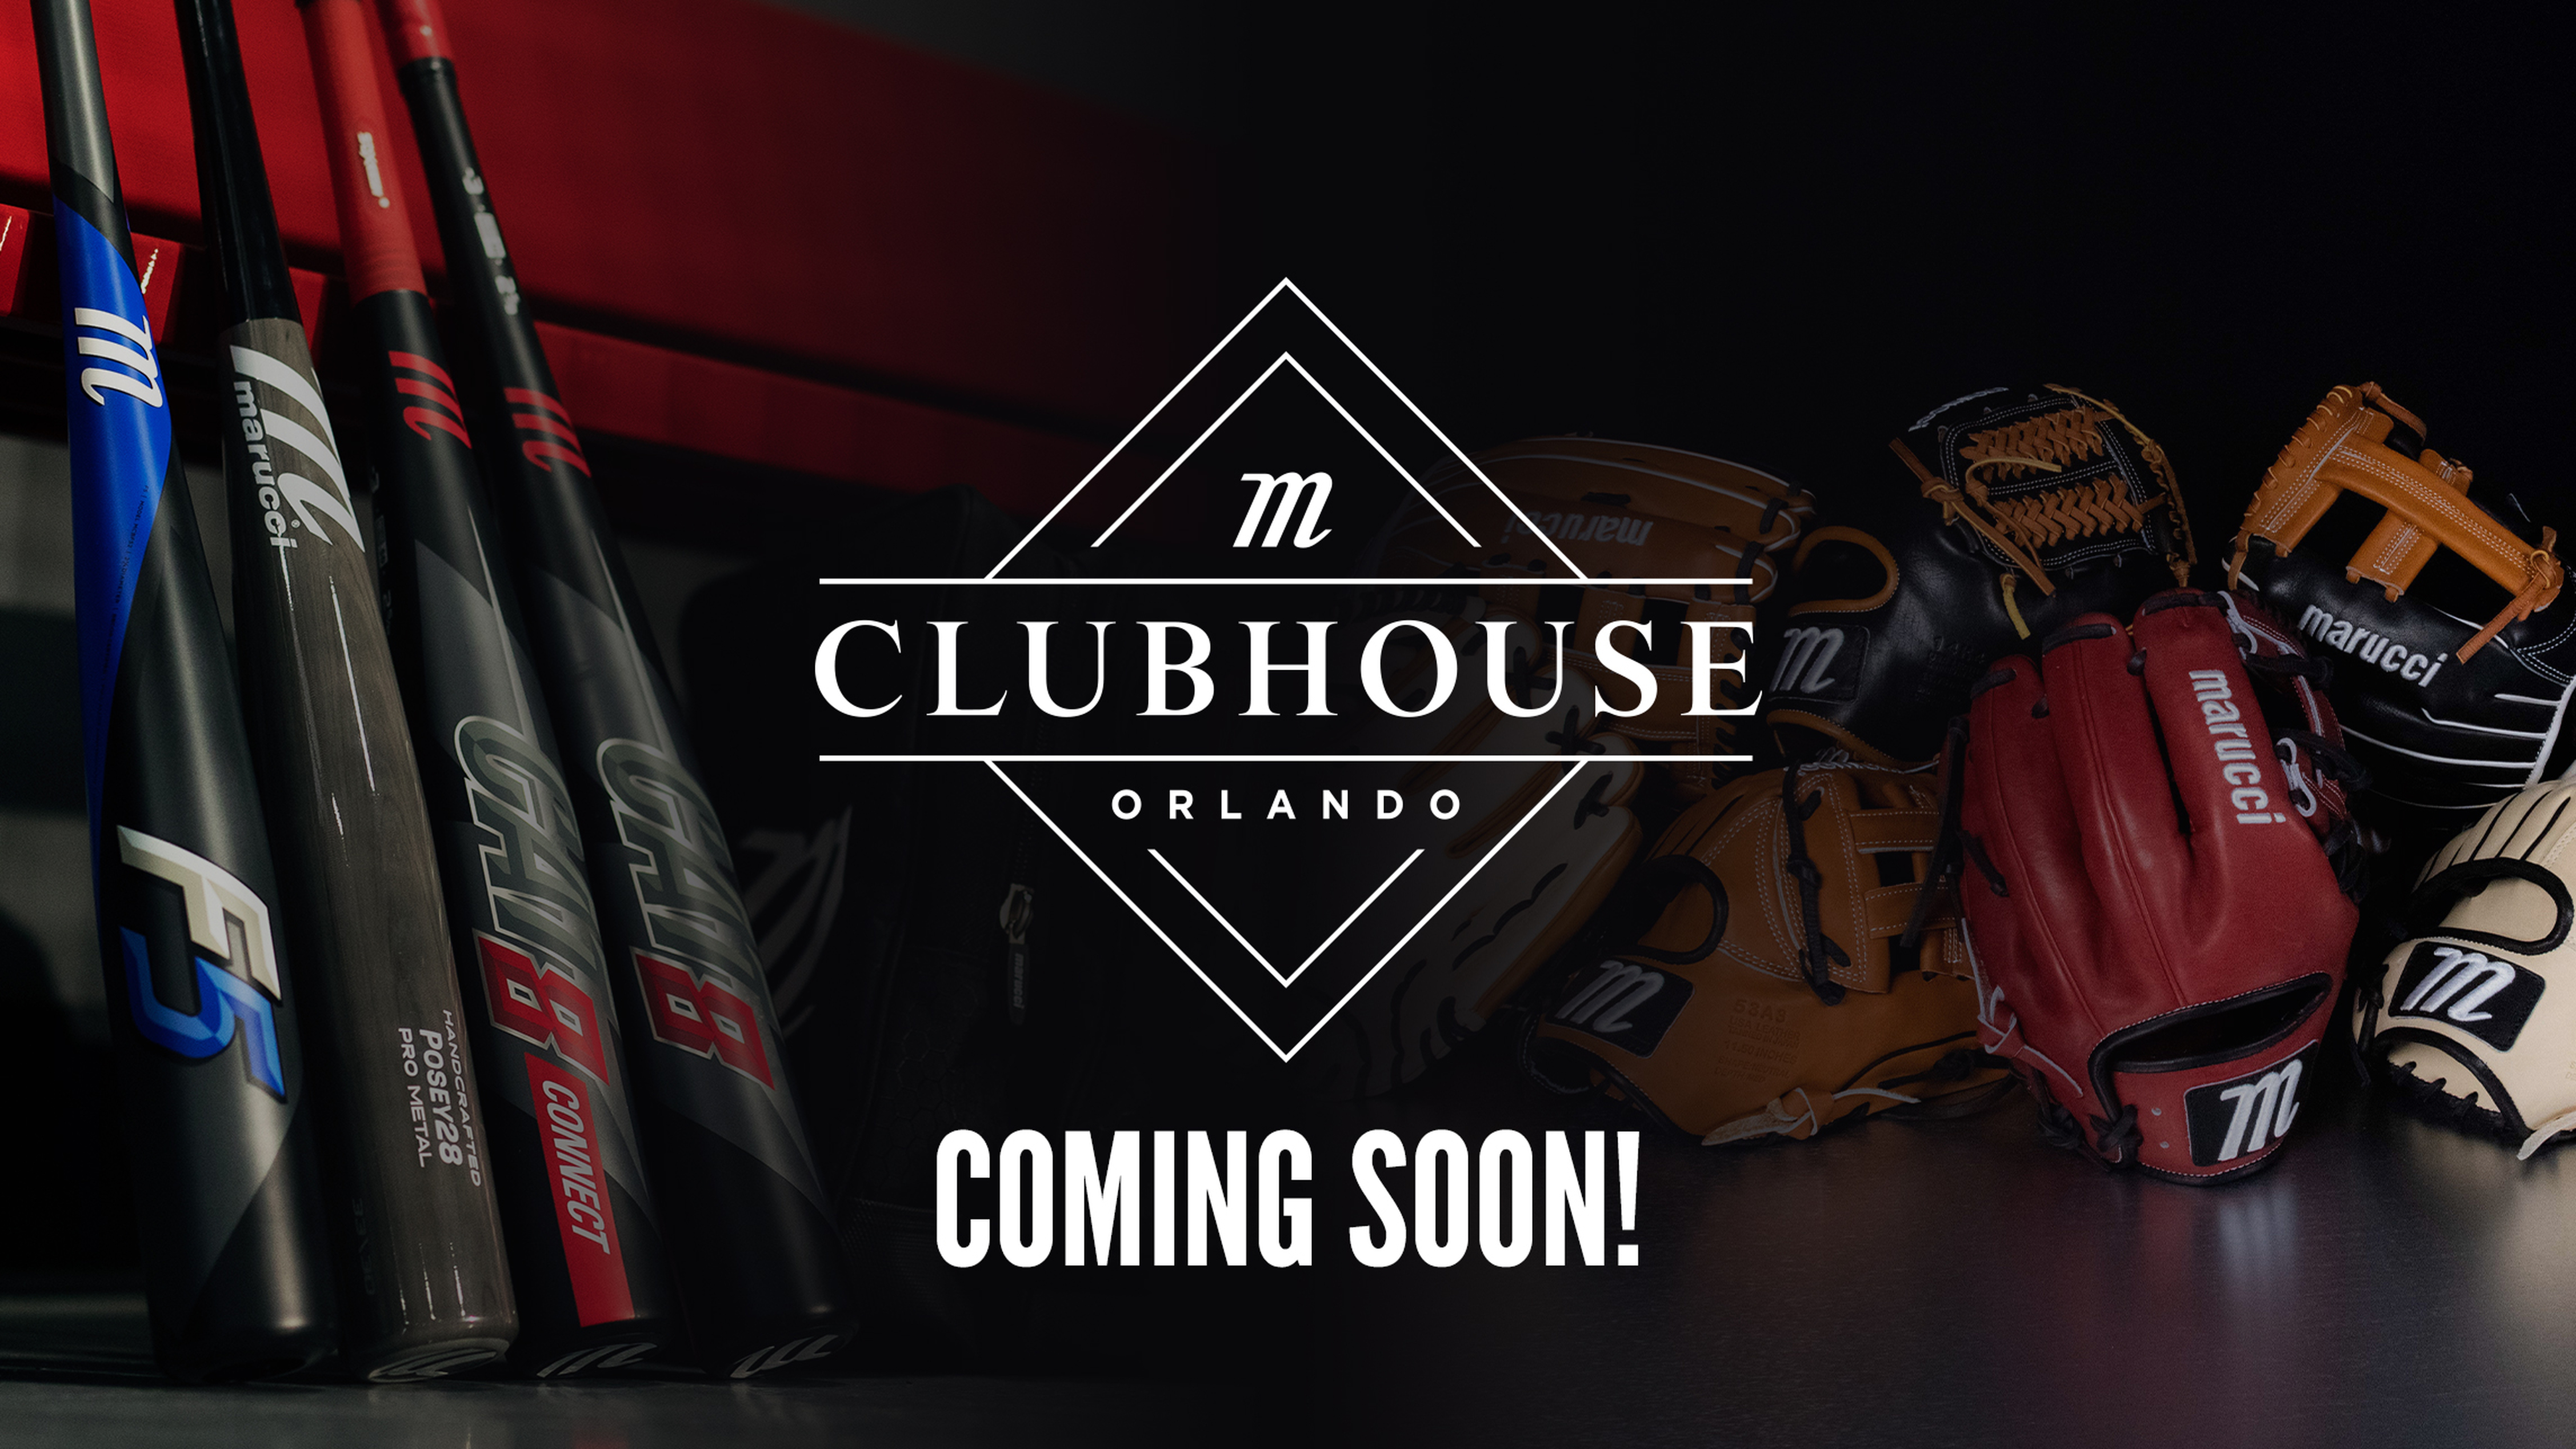 Marucci Clubhouse set to debut in Orlando